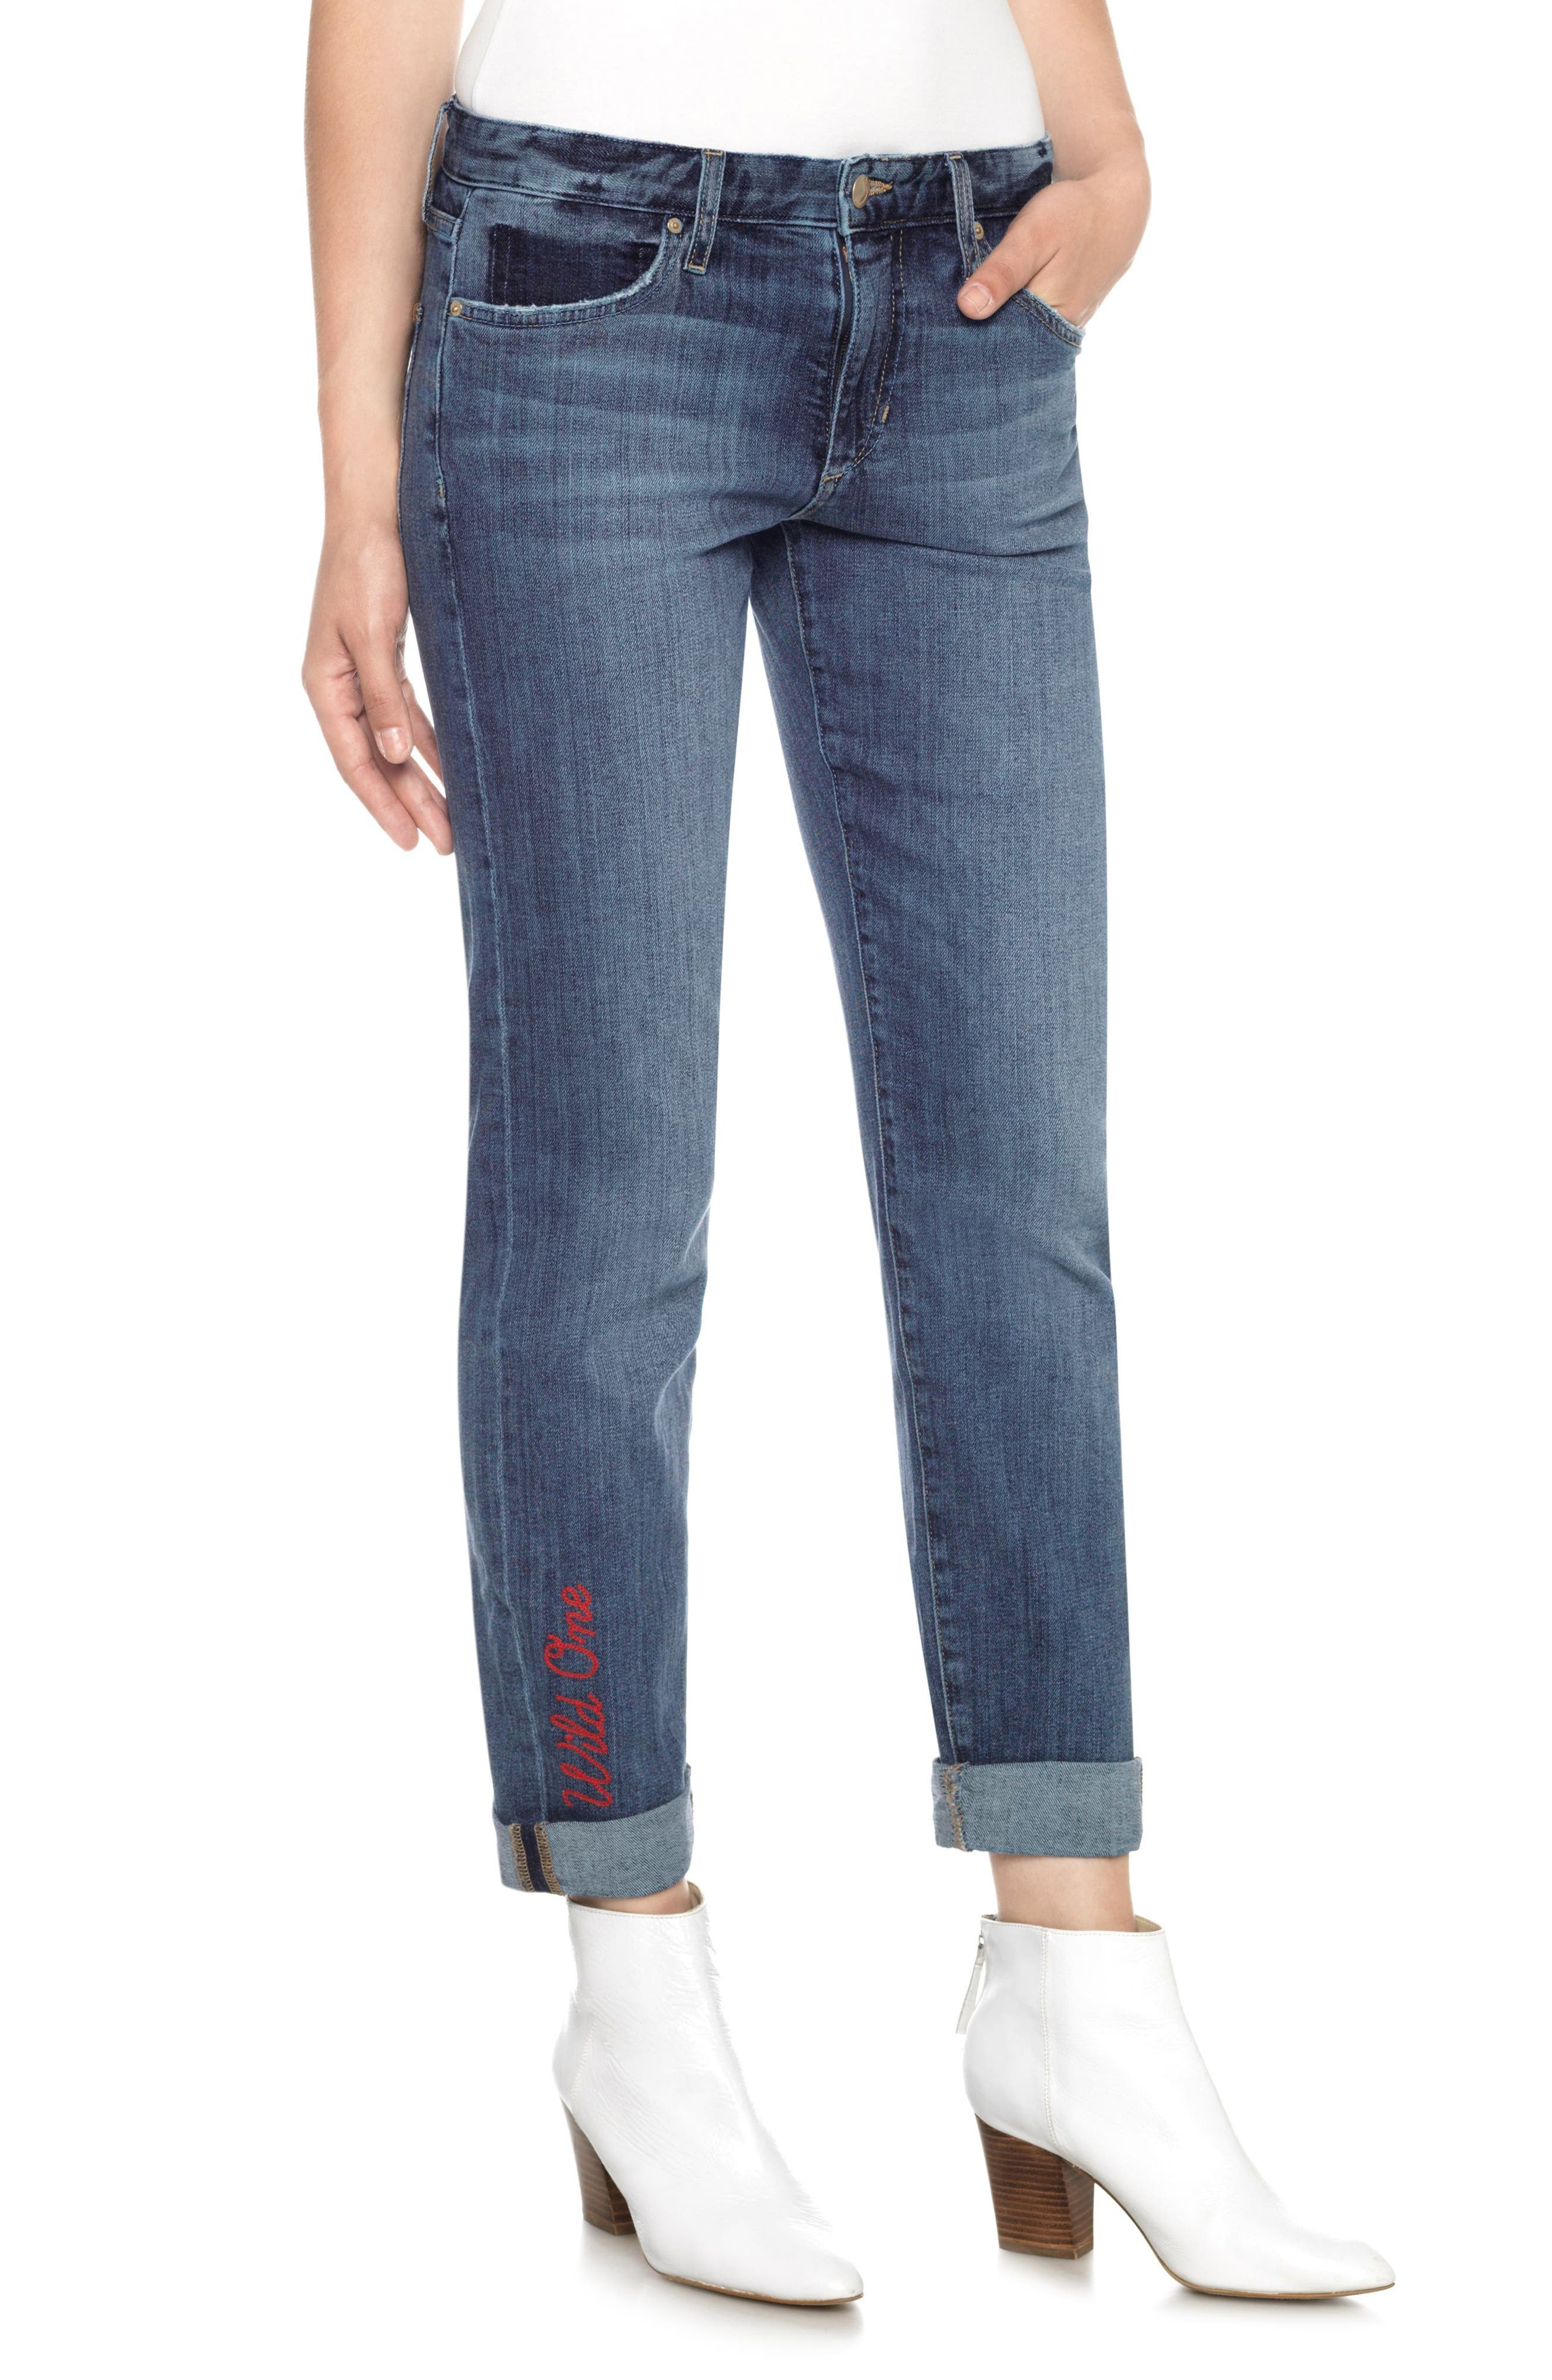 Alternate Image 1 Selected - Joe's The Smith Wild One Ankle Jeans (Clenna)